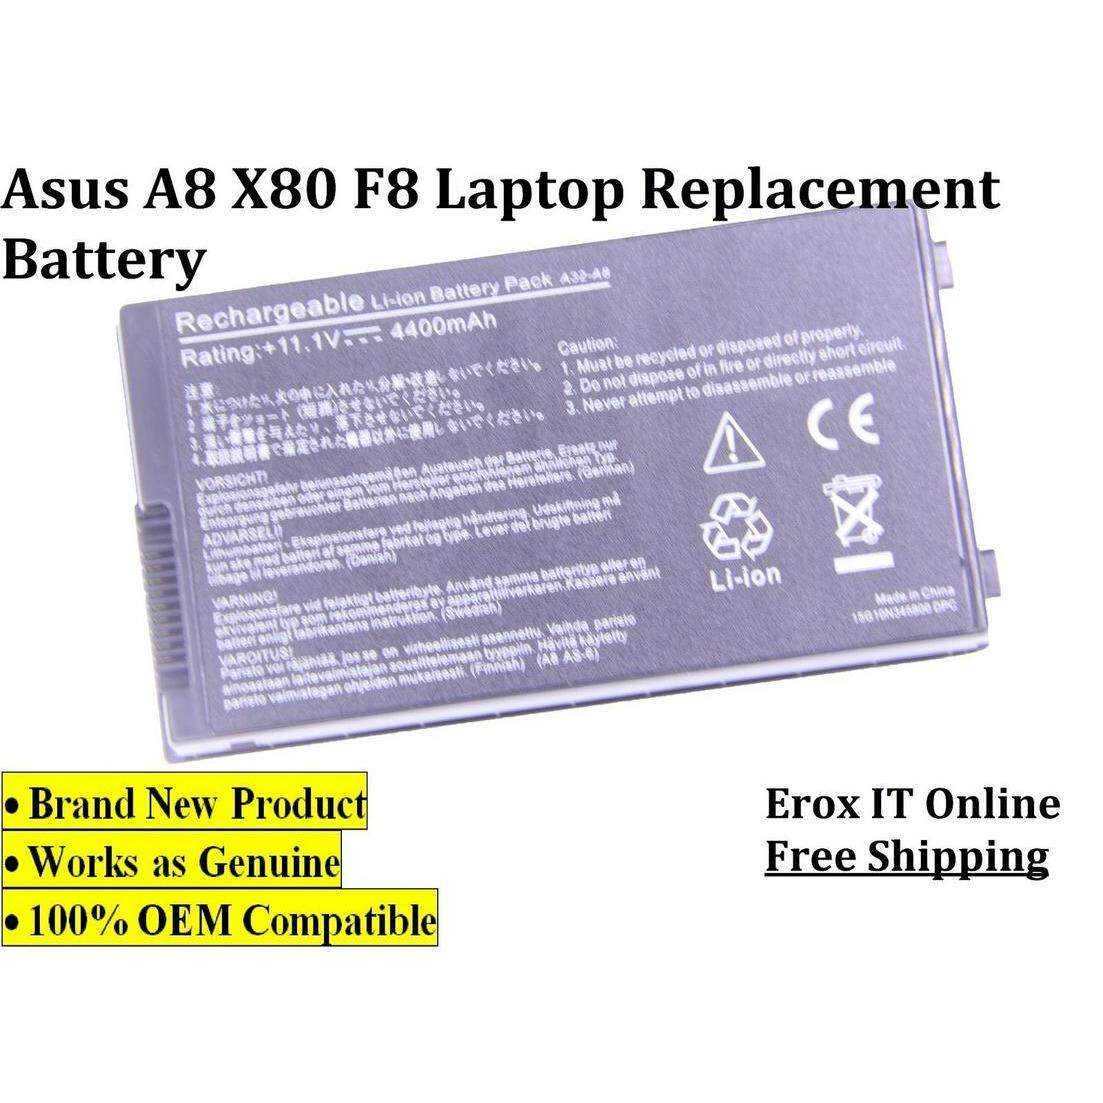 Asus A8H A8HE A8J A8JA laptop battery /Asus A32-A8 laptop battery Malaysia